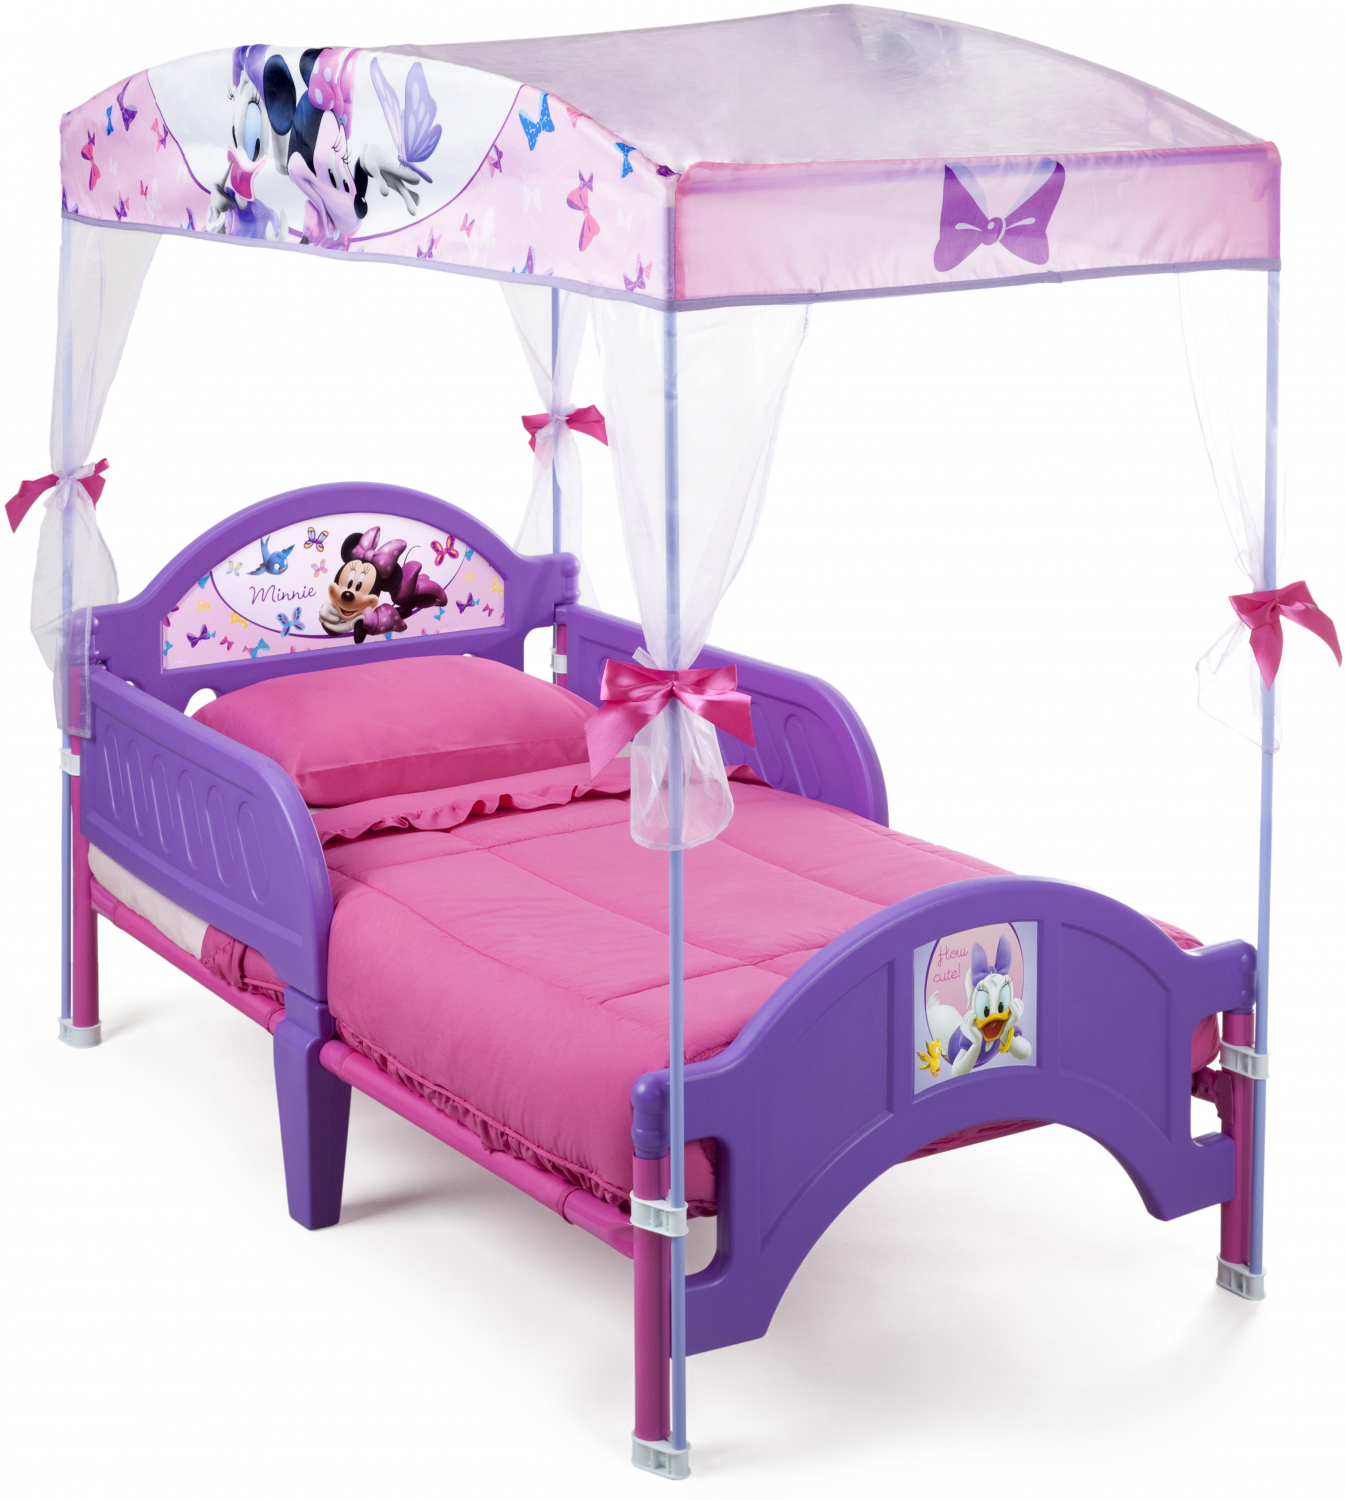 Minnie Mouse Toddler Canopy Bed Purple Girls Children Bedroom ...